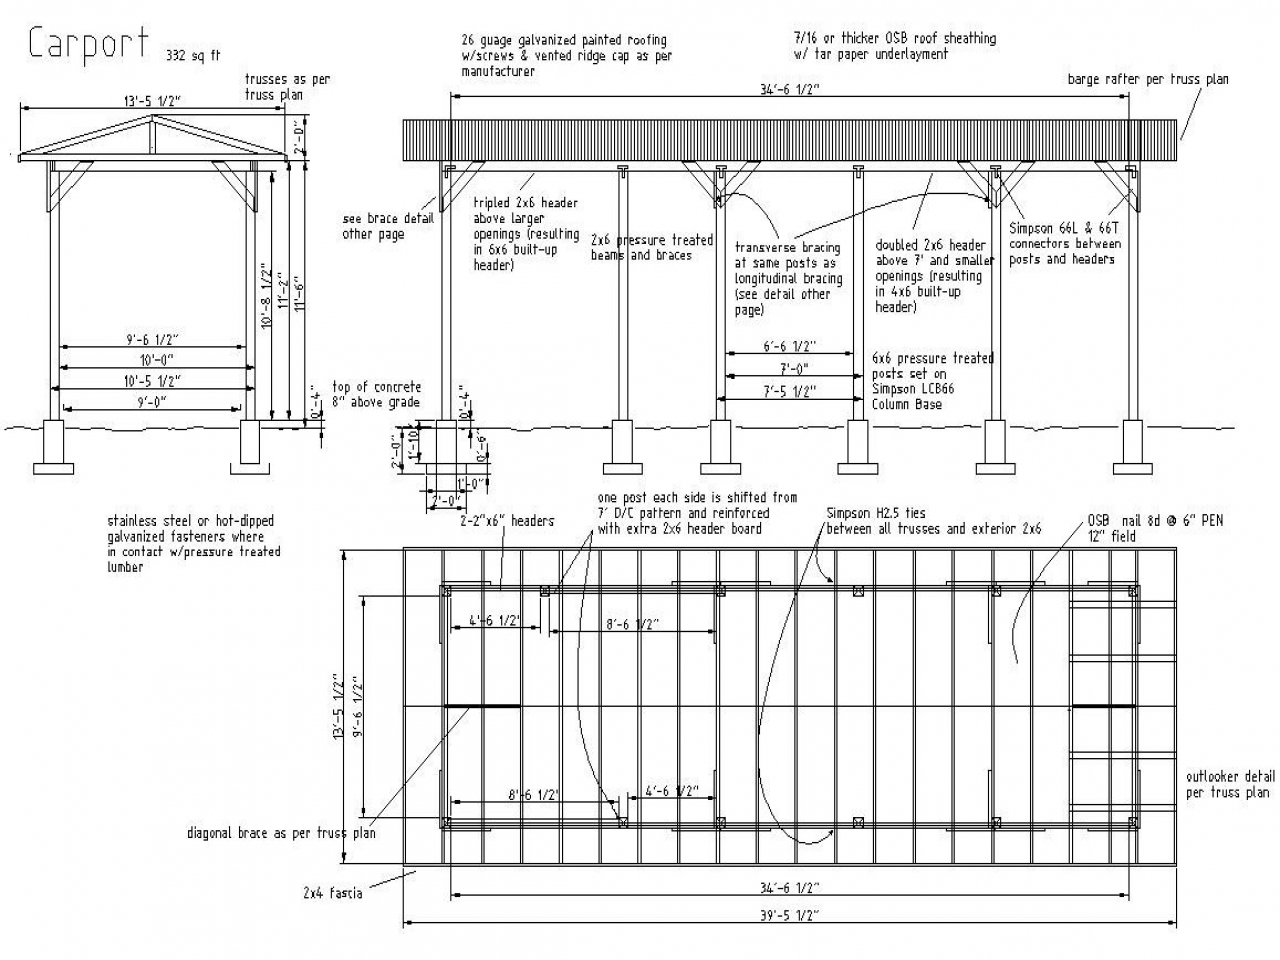 metal-carport-plans-free-rv-carport-plans-lrg-90d133745390cc58 Ranch Home Plans With Carport on ranch home plans with courtyards, ranch house carport, ranch home plans with patios, ranch home plans with pools, ranch home plans with garage, ranch homes with vinyl siding, ranch home plans with basements,